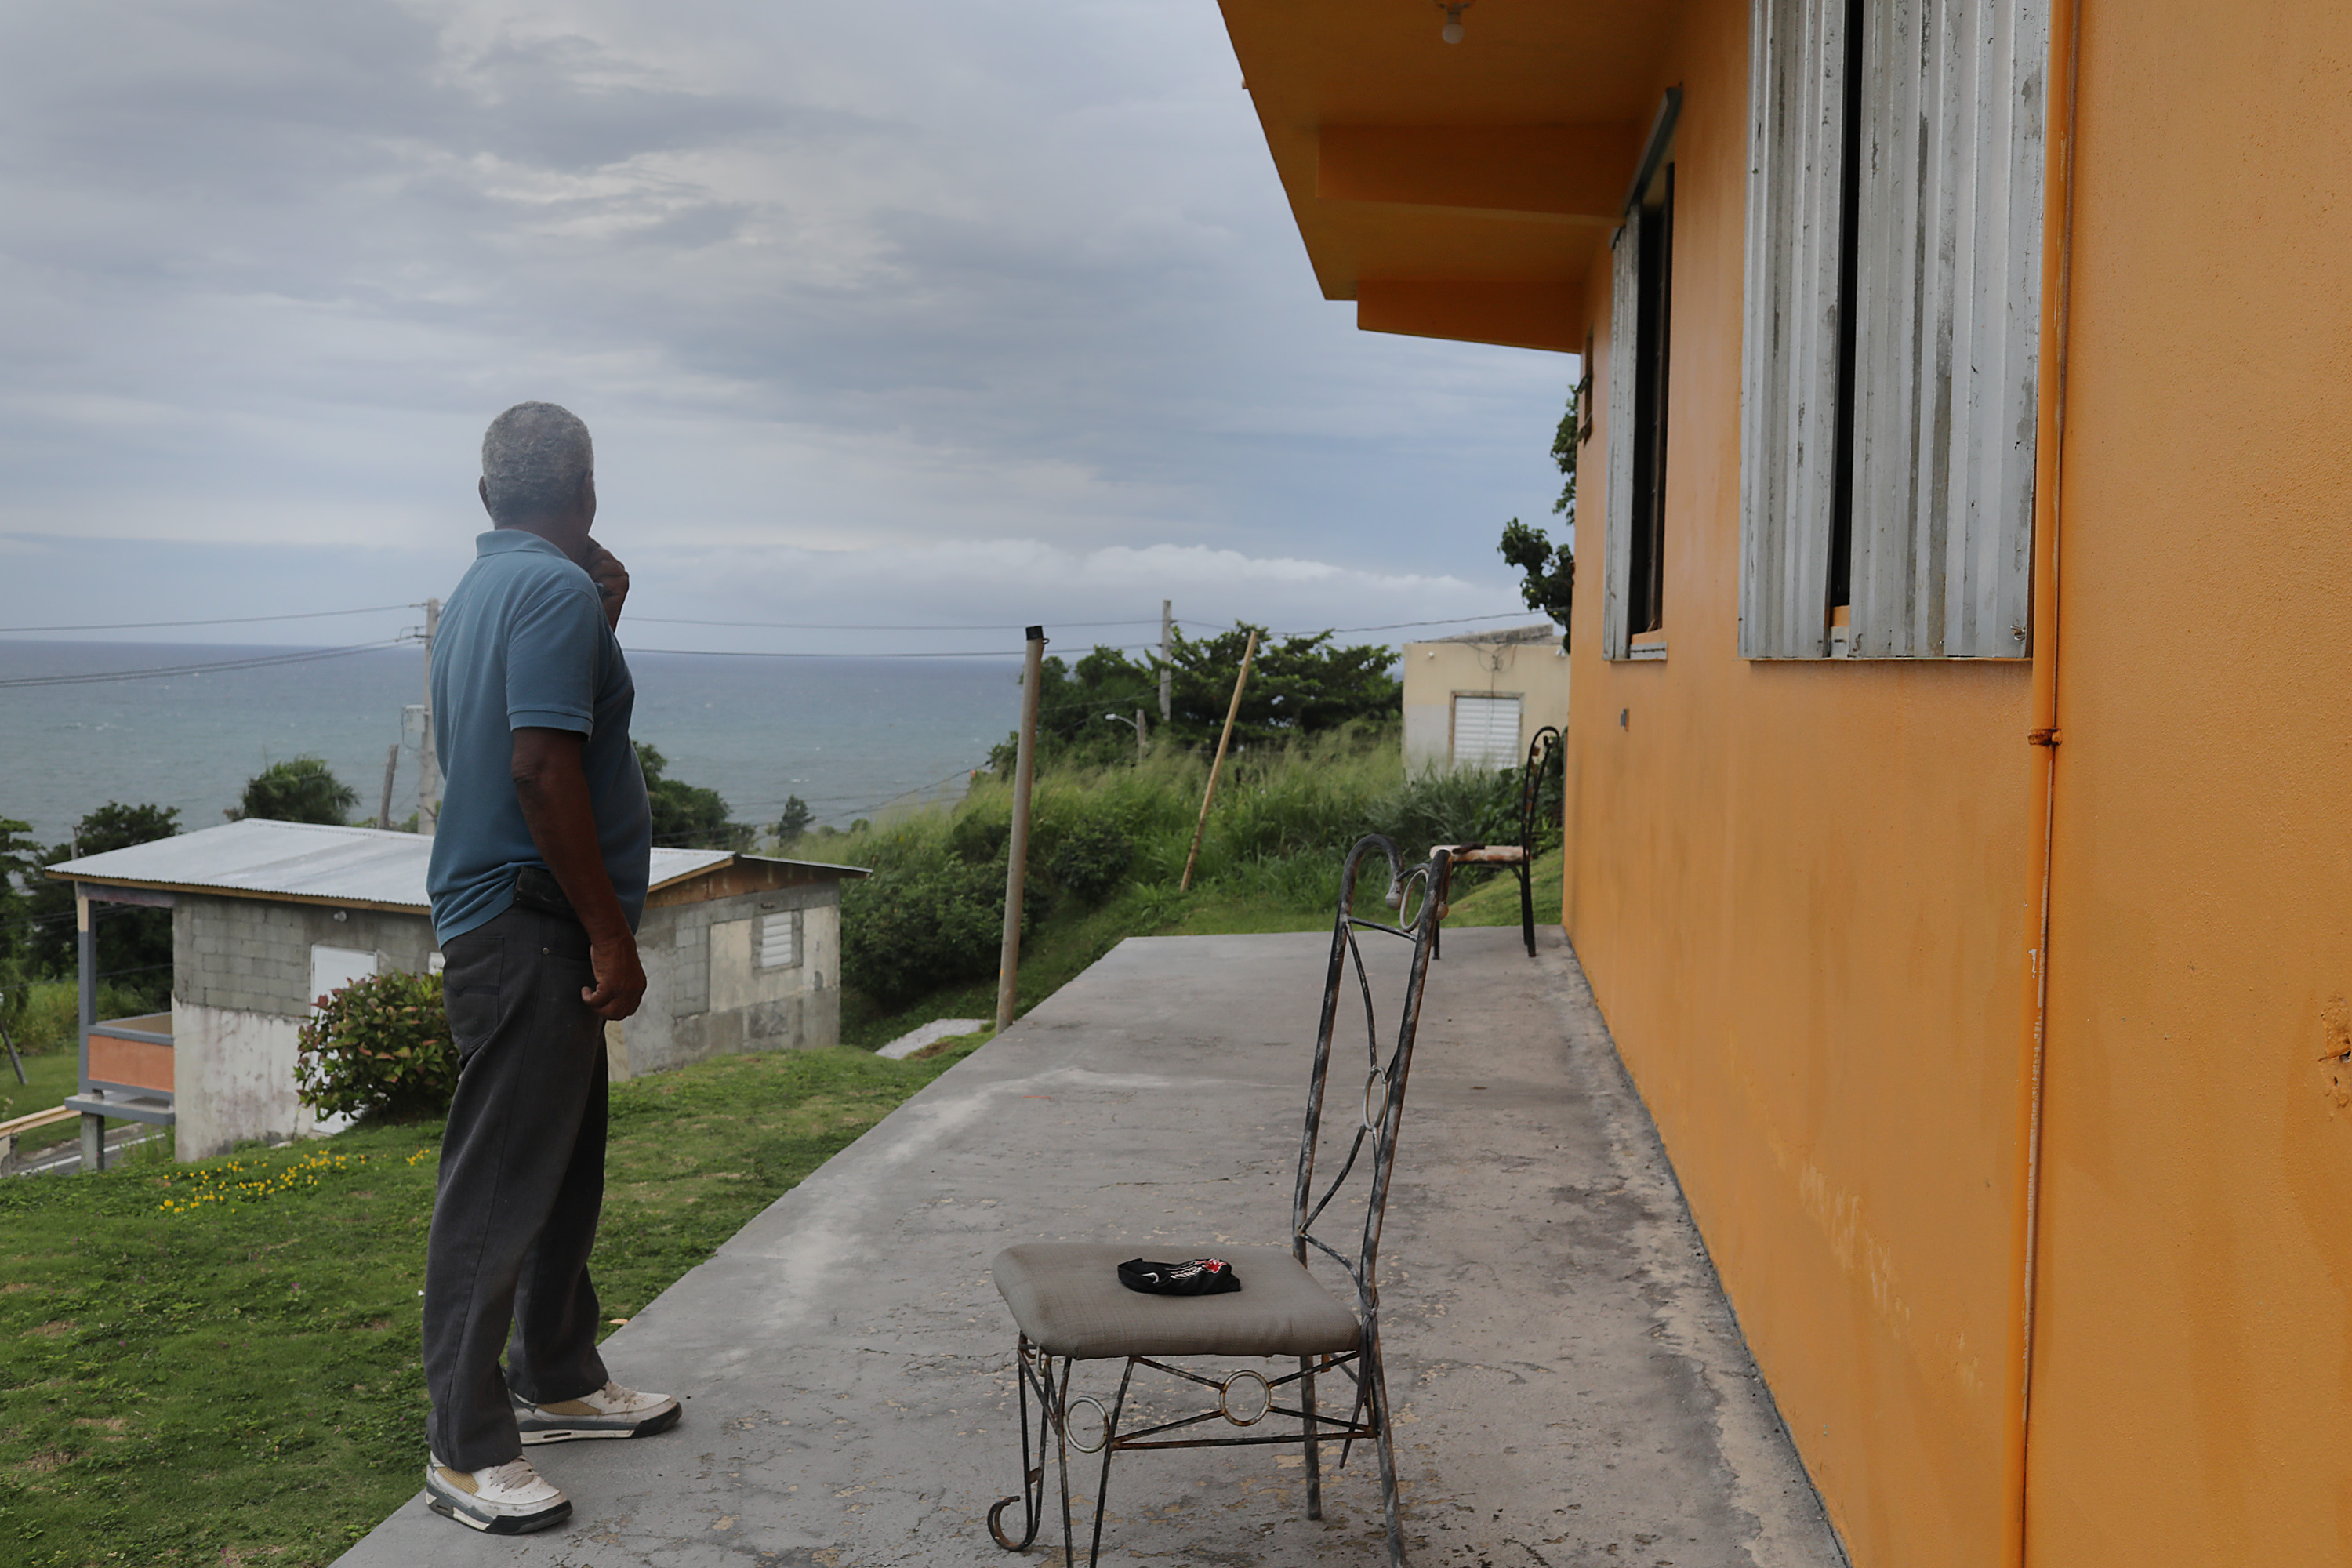 Zollo Azea puts shutters over the windows of his home as he prepares for the arrival of Tropical Storm Dorian on August 28, 2019 in Yabucoa, Puerto Rico. (Joe Raedle/Getty Images)